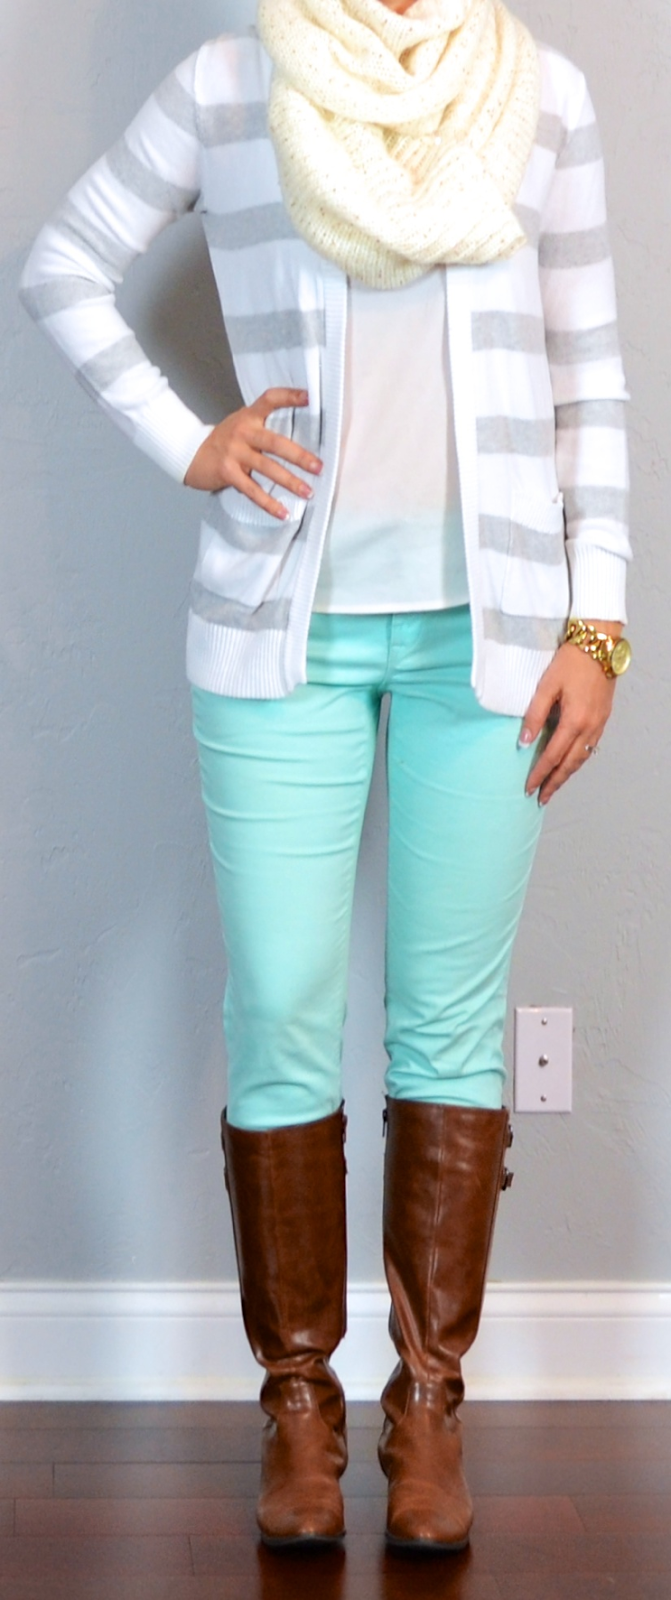 6bf5fb422d outfit post  mint jeans